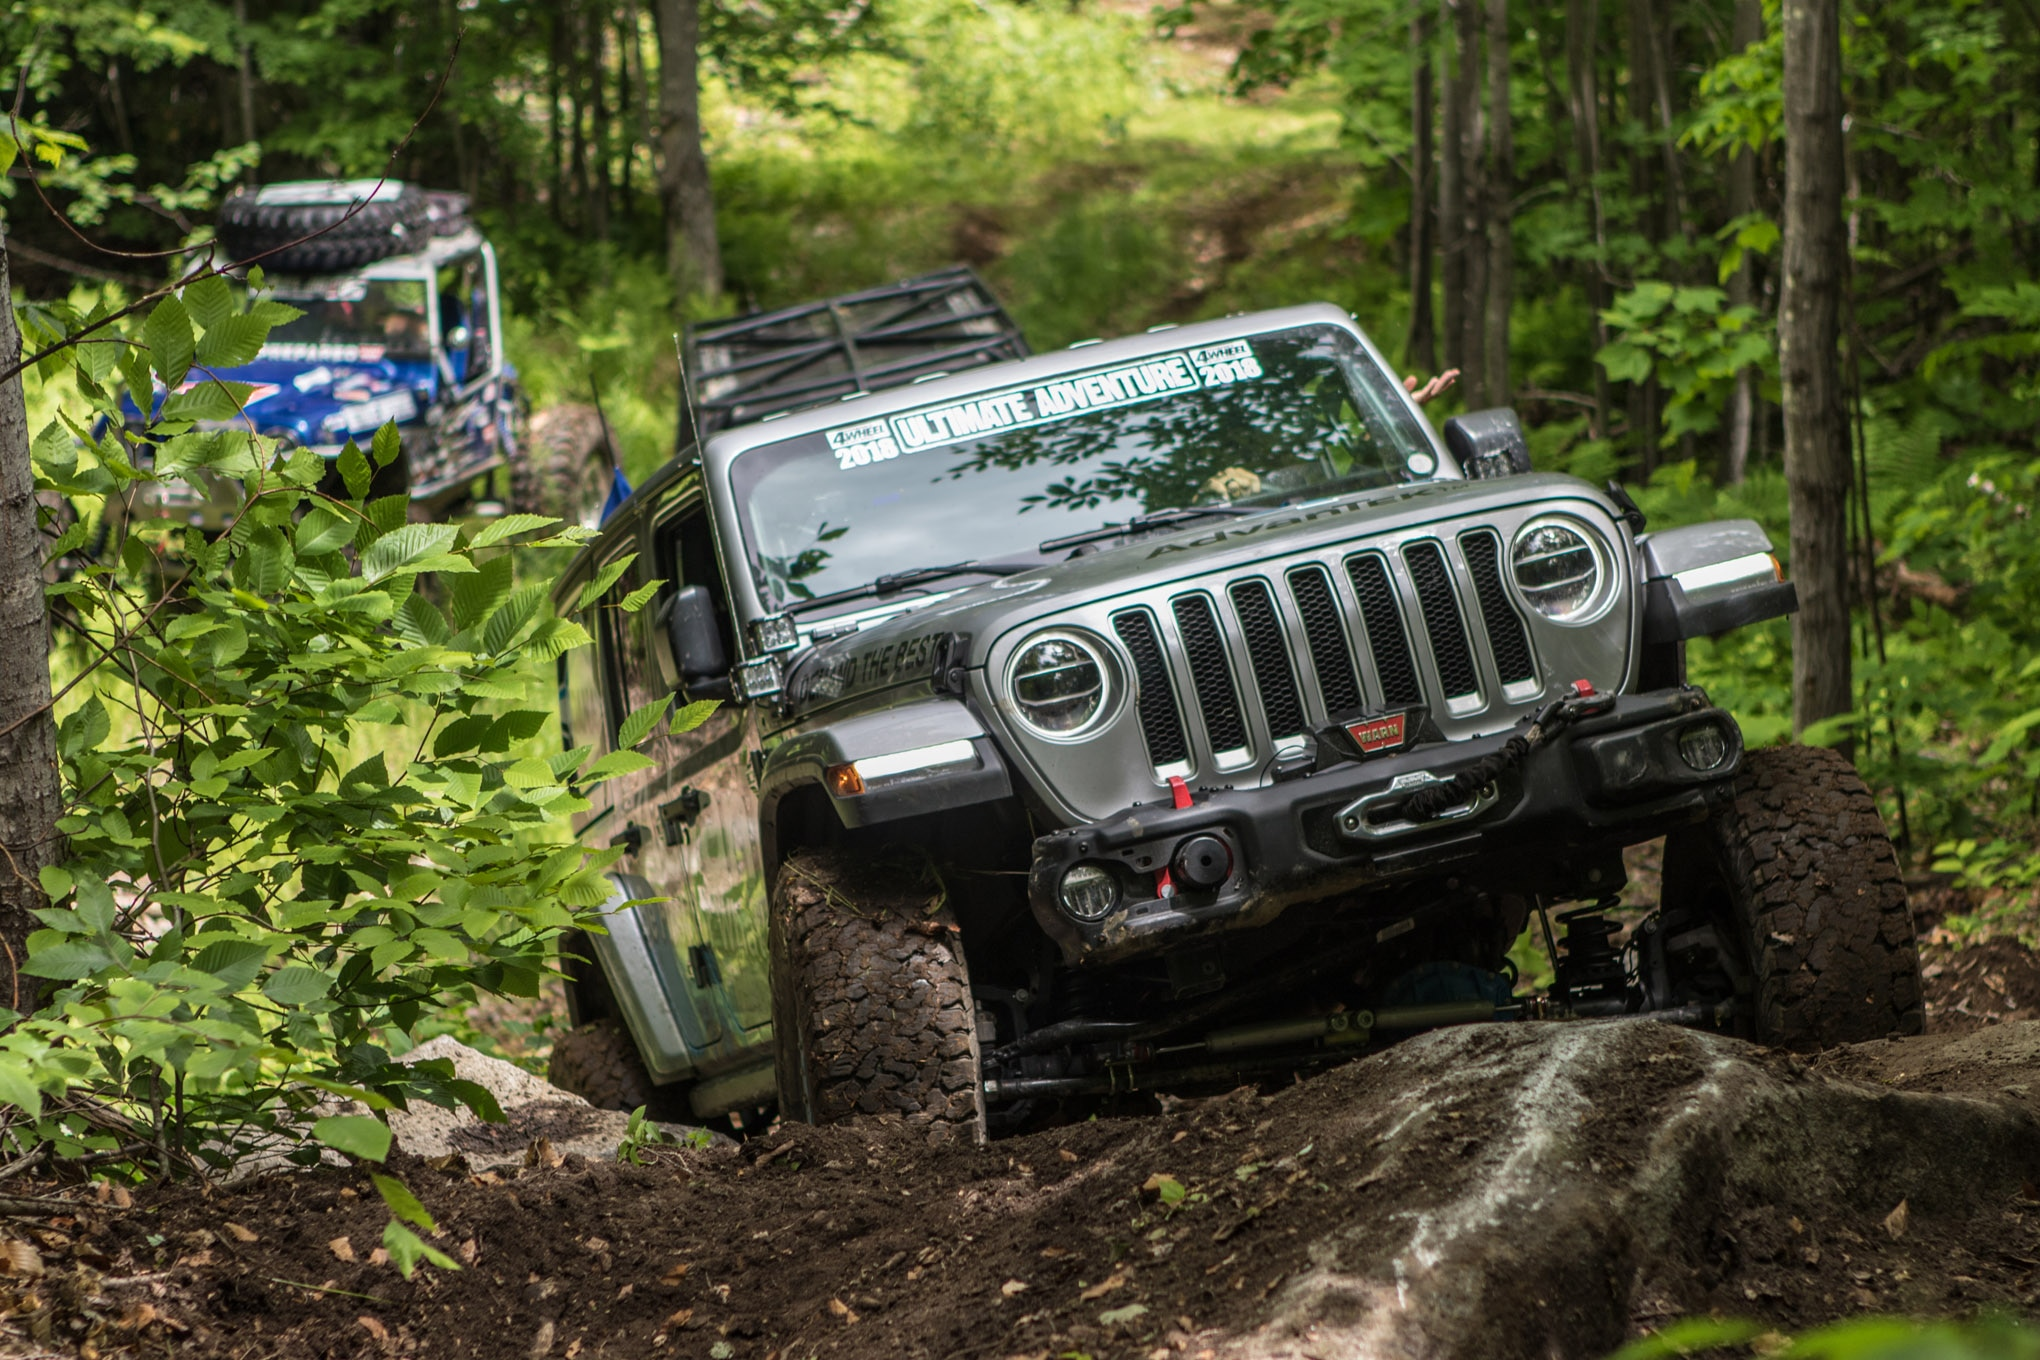 """JKs are so last year, so Dana brought a JL on this Ultimate Adventure! The 37-inch BFG All-Terrain tires were admittedly out of their element in the super-sloppy ground we encountered, but with some upper-level driving skills and the helpful spotting by his wife, Rachel, Dana's Randall """"Whiskey Throttle"""" Speir did an admirable job getting the company's brand-new Wrangler cleanly through the trails unscathed."""